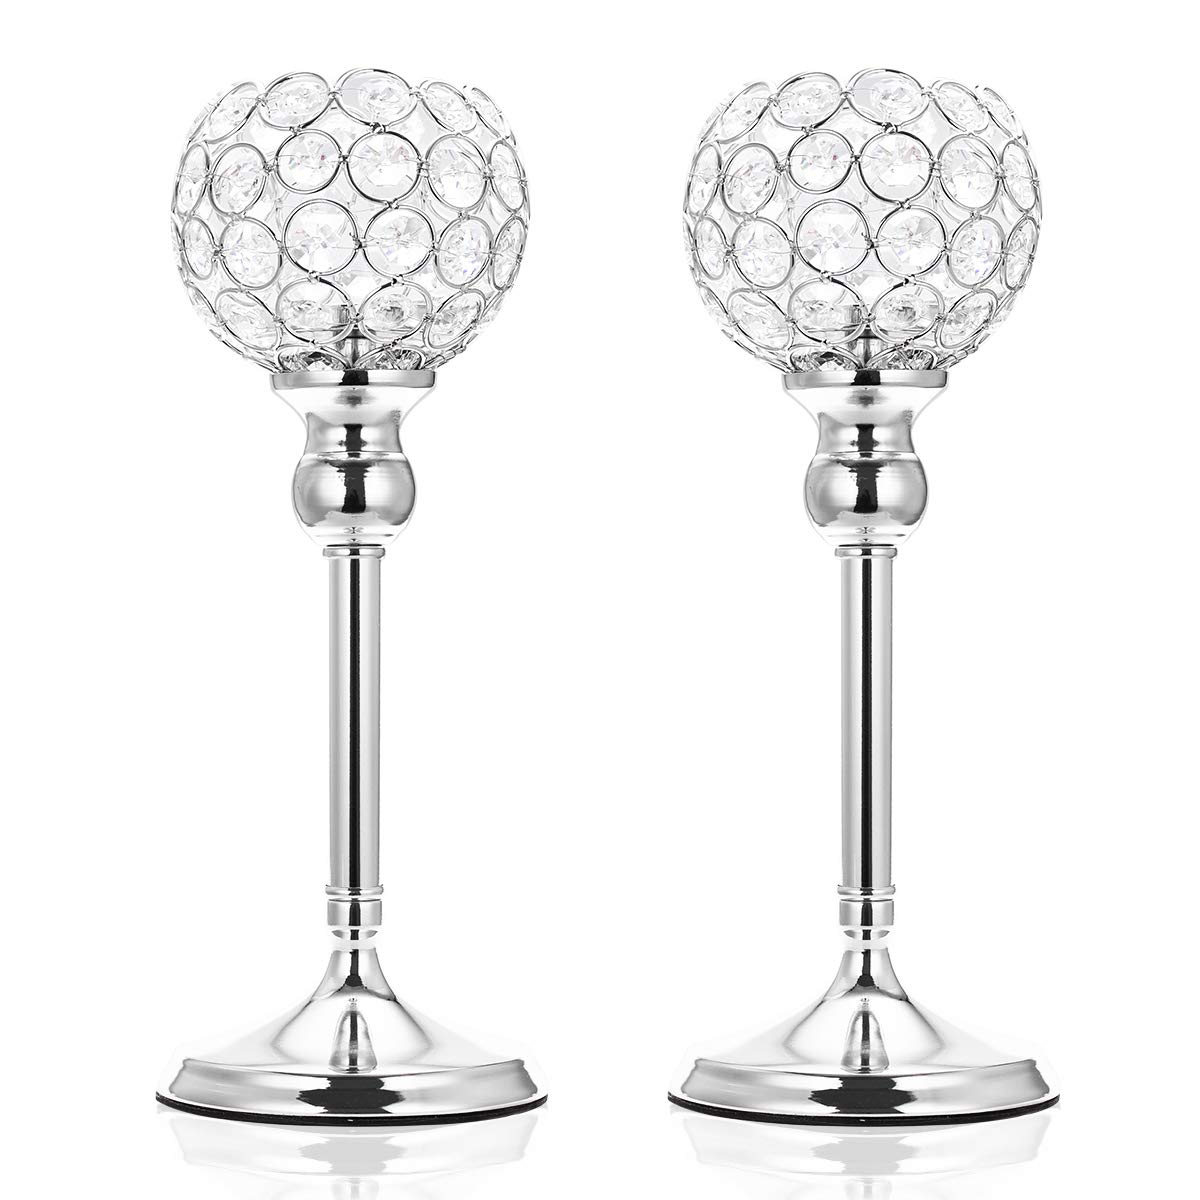 ManChDa Valentines Gift Silver Crystal Spherical Candle Holders Sets Of 2 Wedding Table Centerpieces For Birthday Anniversary Celebration Modern Decoration